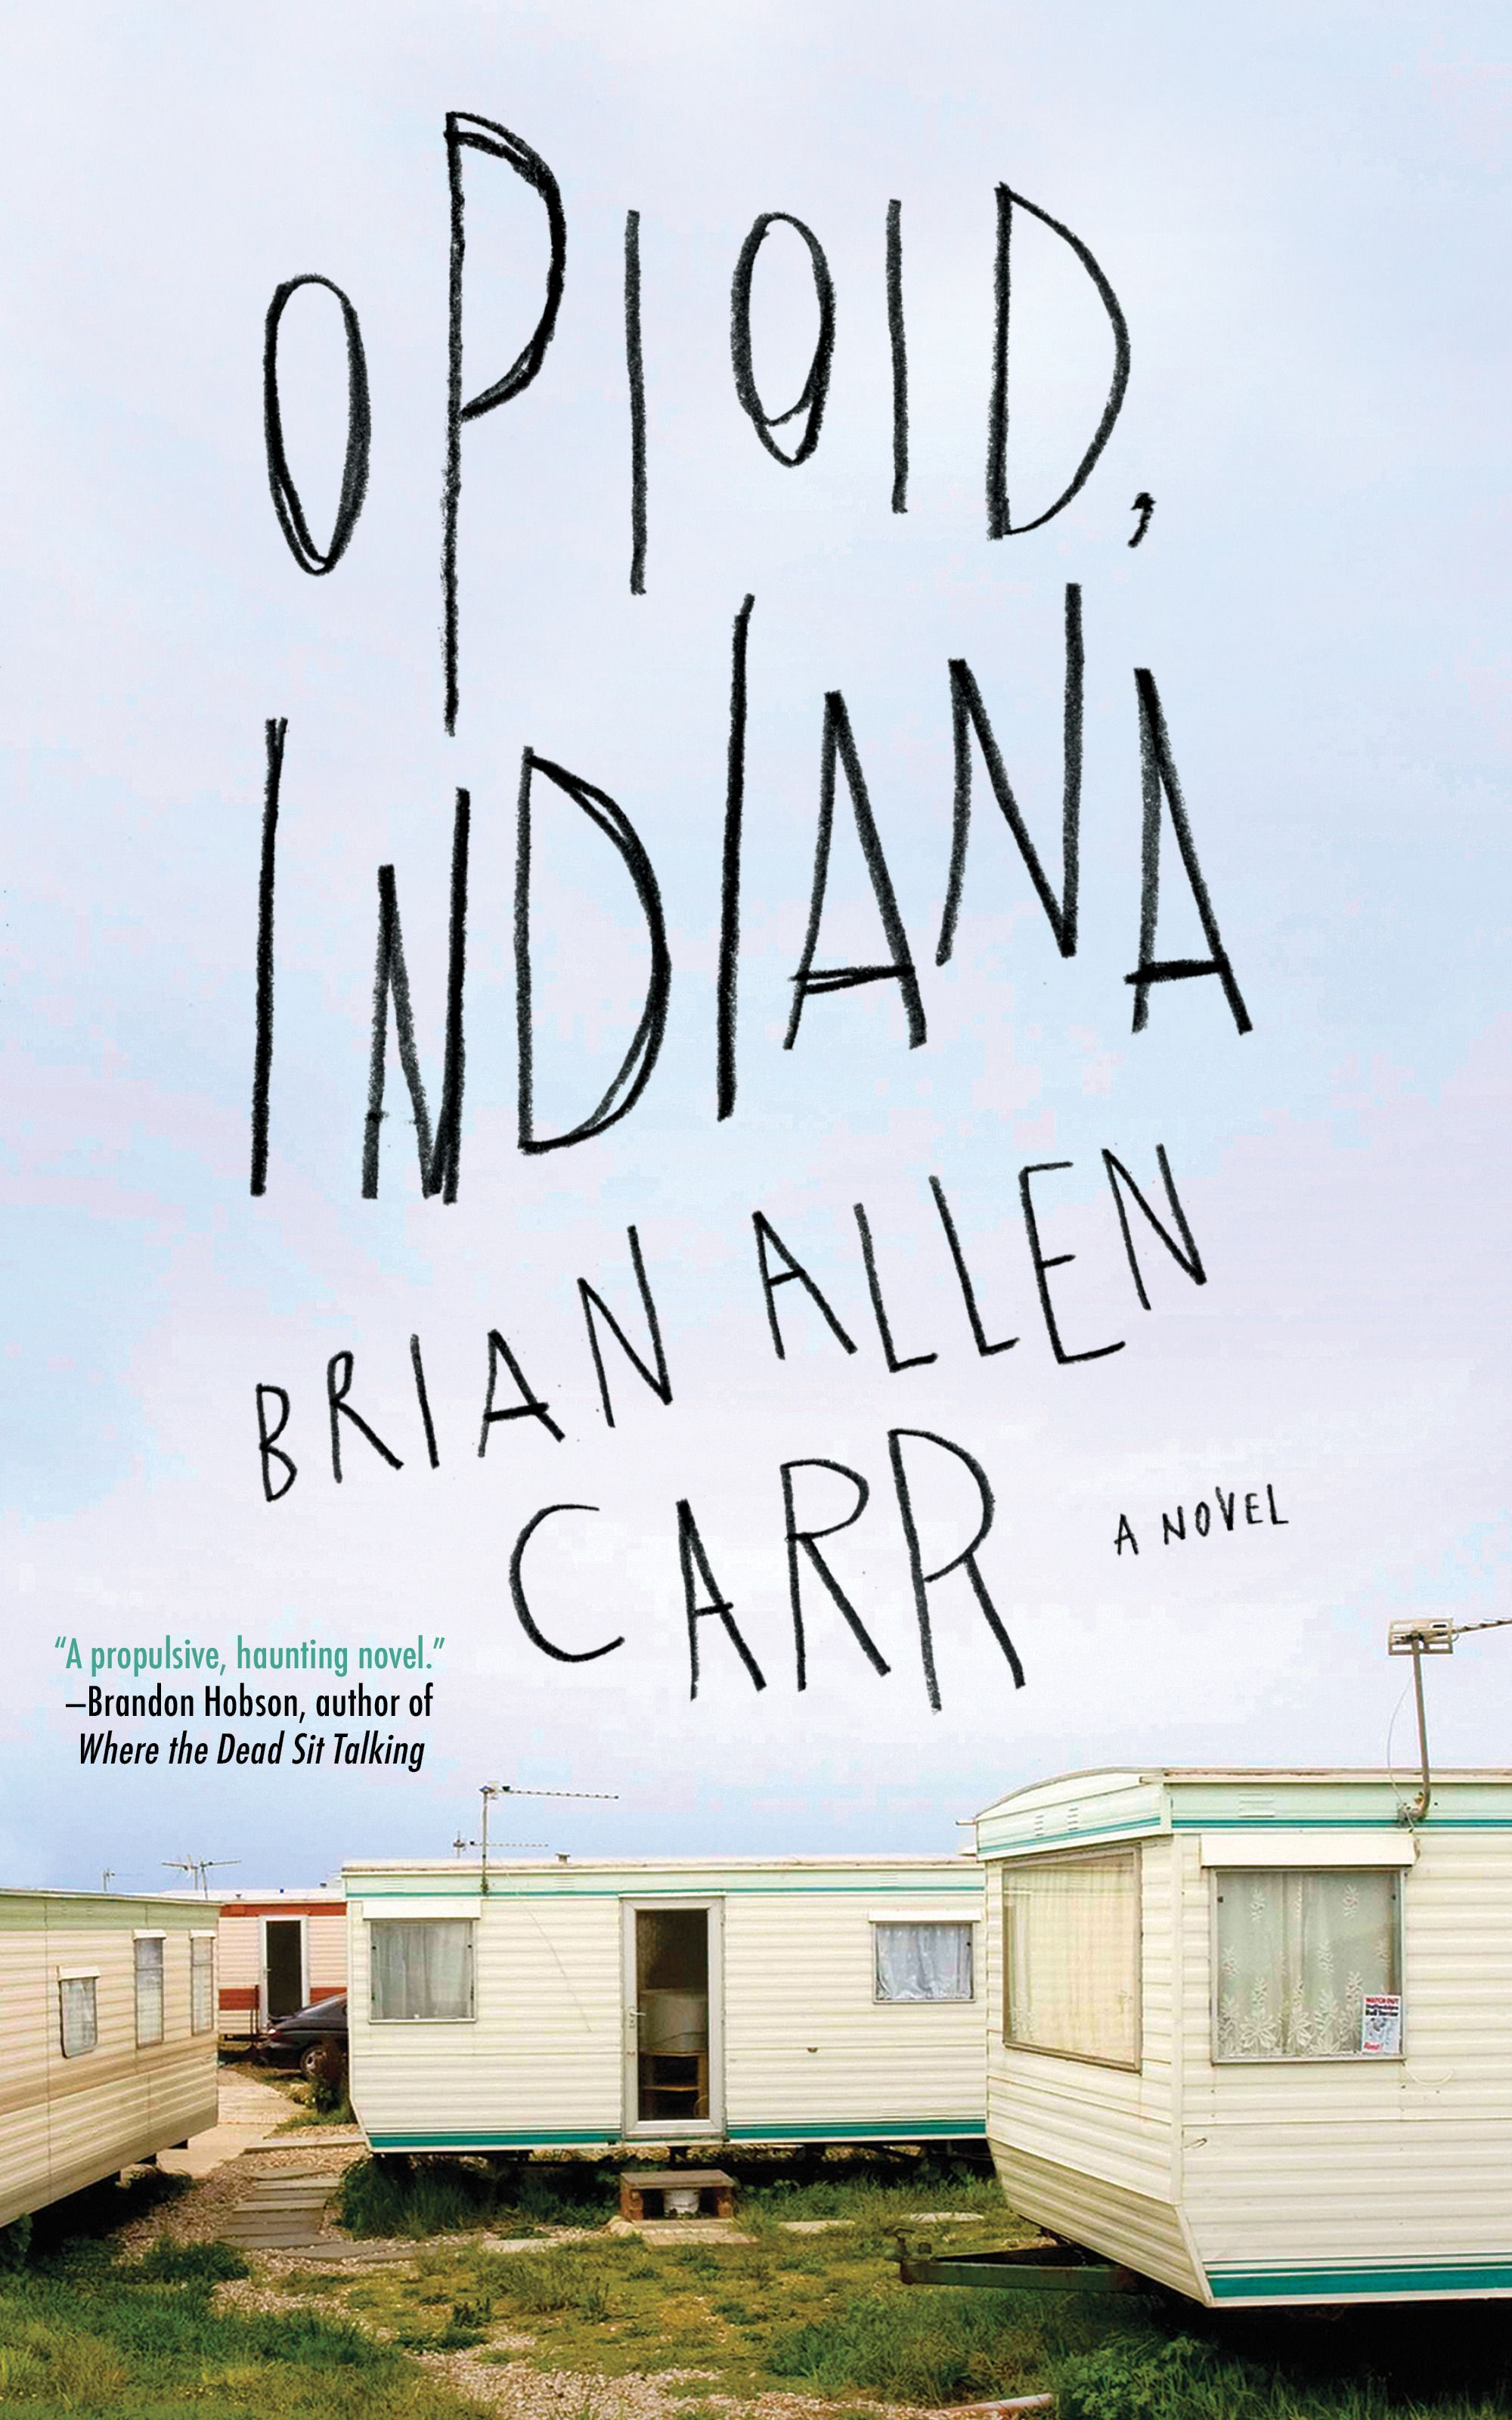 September 17 (Soho Press) - During a week-long suspension from school, a teenage transplant to impoverished rural Indiana searches for a job, the whereabouts of his vanished drug-addicted guardian, and meaning in the America of the Trump years.Seventeen-year-old Riggle is living in rural Indiana with his uncle and uncle's girlfriend after the death of both of his parents. Now his uncle has gone missing, probably on a drug binge. It's Monday, and $800 in rent is due Friday. Riggle, who's been suspended from school, has to either find his uncle or get the money together himself. His mission exposes him to a motley group of Opioid locals—encounters by turns perplexing, harrowing, and heartening. Meanwhile, Riggle marks each day by remembering the mythology his late mother invented for him about how the days got their names.With amazing directness and insight, Carr explores what it's like to be a high school kid in in the age of Trump, a time of economic inequality, addiction, confederate flags, and mass shootings. A work of empathy and insight that pierces to the heart of our moment through an unforgettable protagonist.